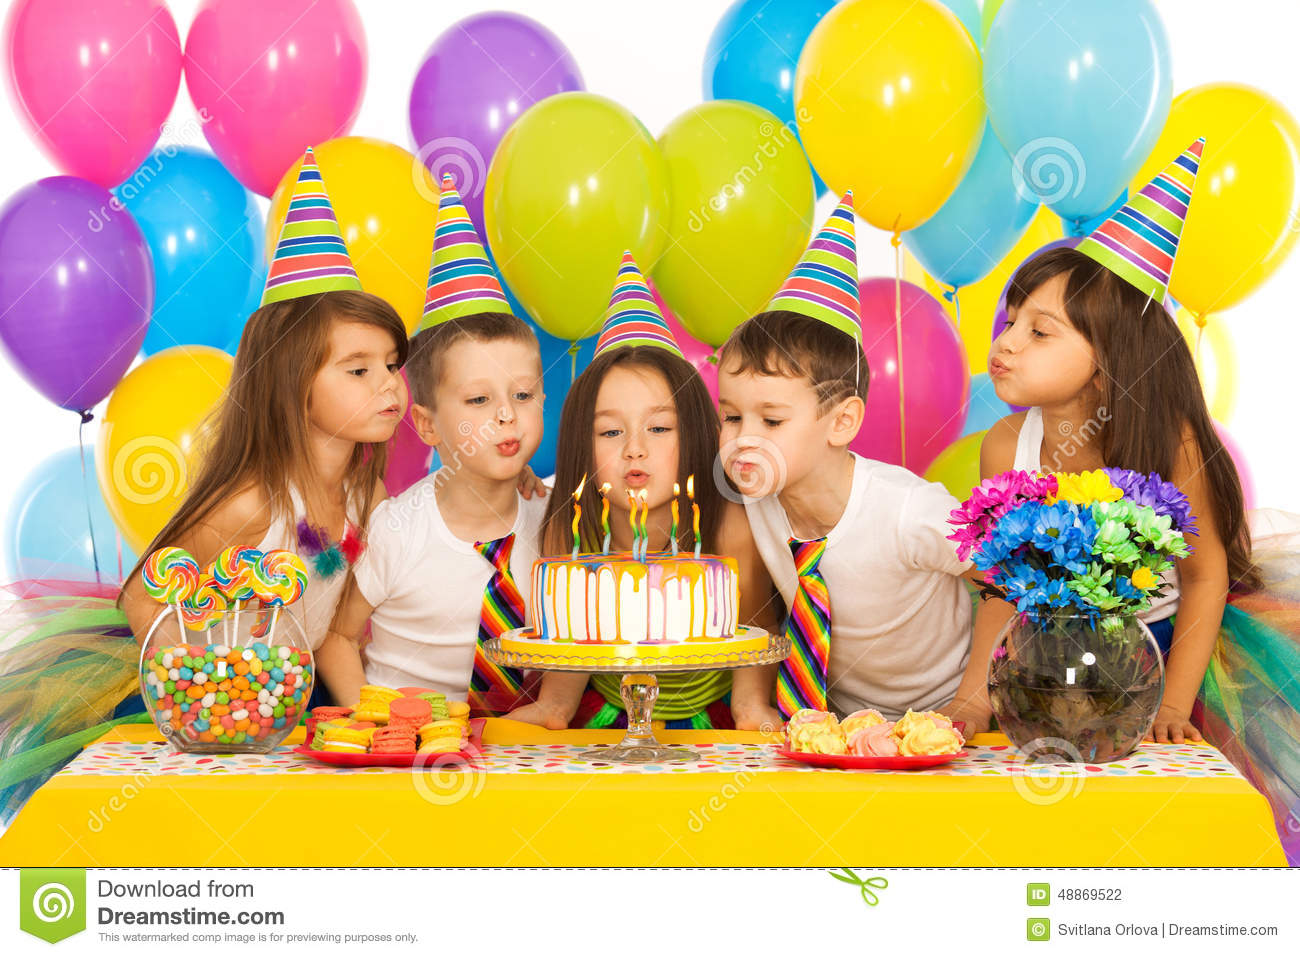 picture of birthday party celebration ; kids-celebrating-birthday-party-blowing-group-joyful-little-candles-cake-holidays-concept-48869522